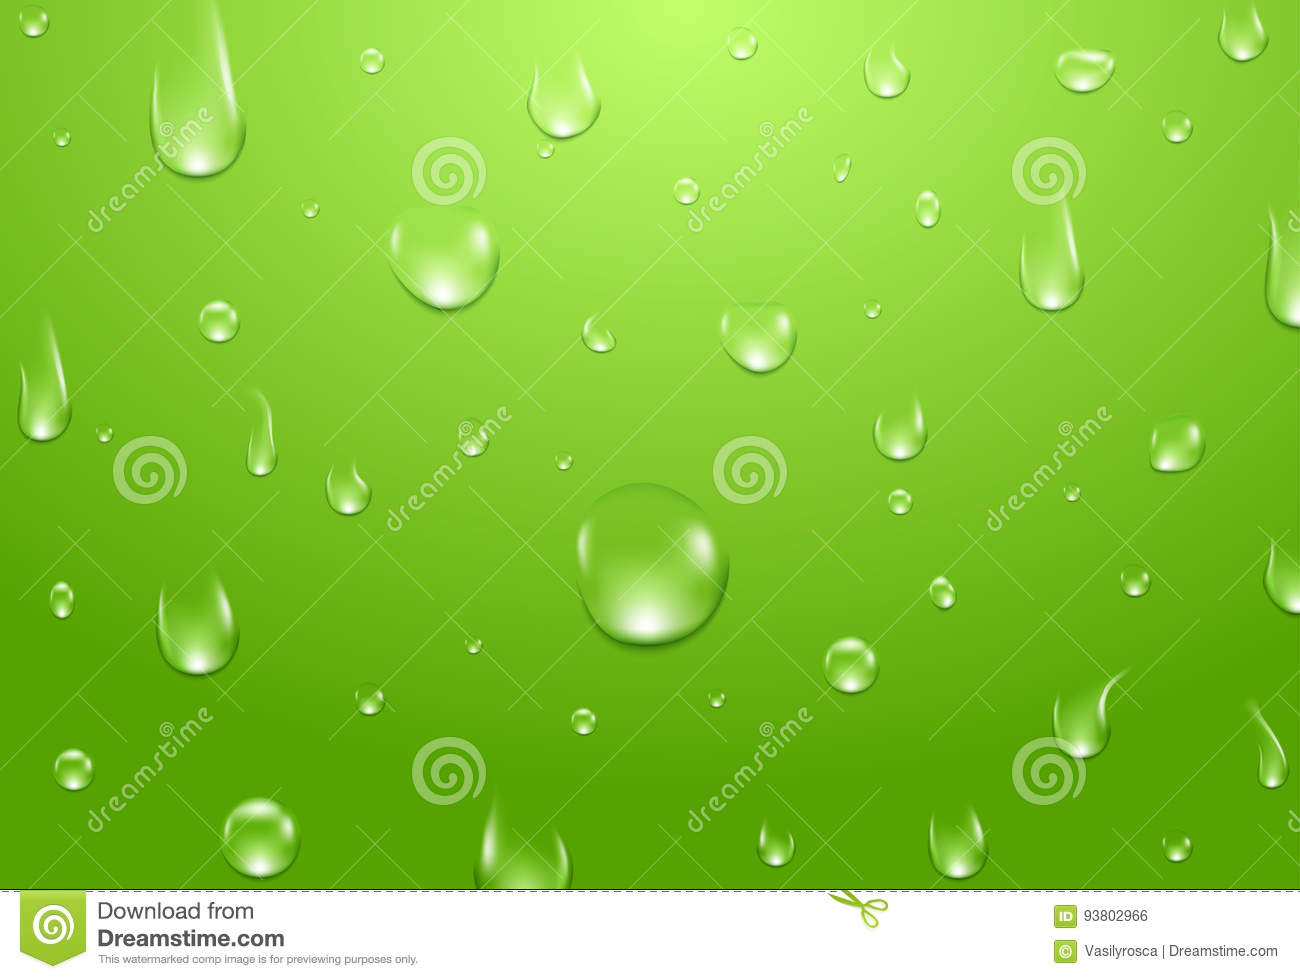 Download Water Drops Background. Fresh Aqua Or Healthy Natural Concept Stock Vector - Illustration of healthy, drop: 93802966